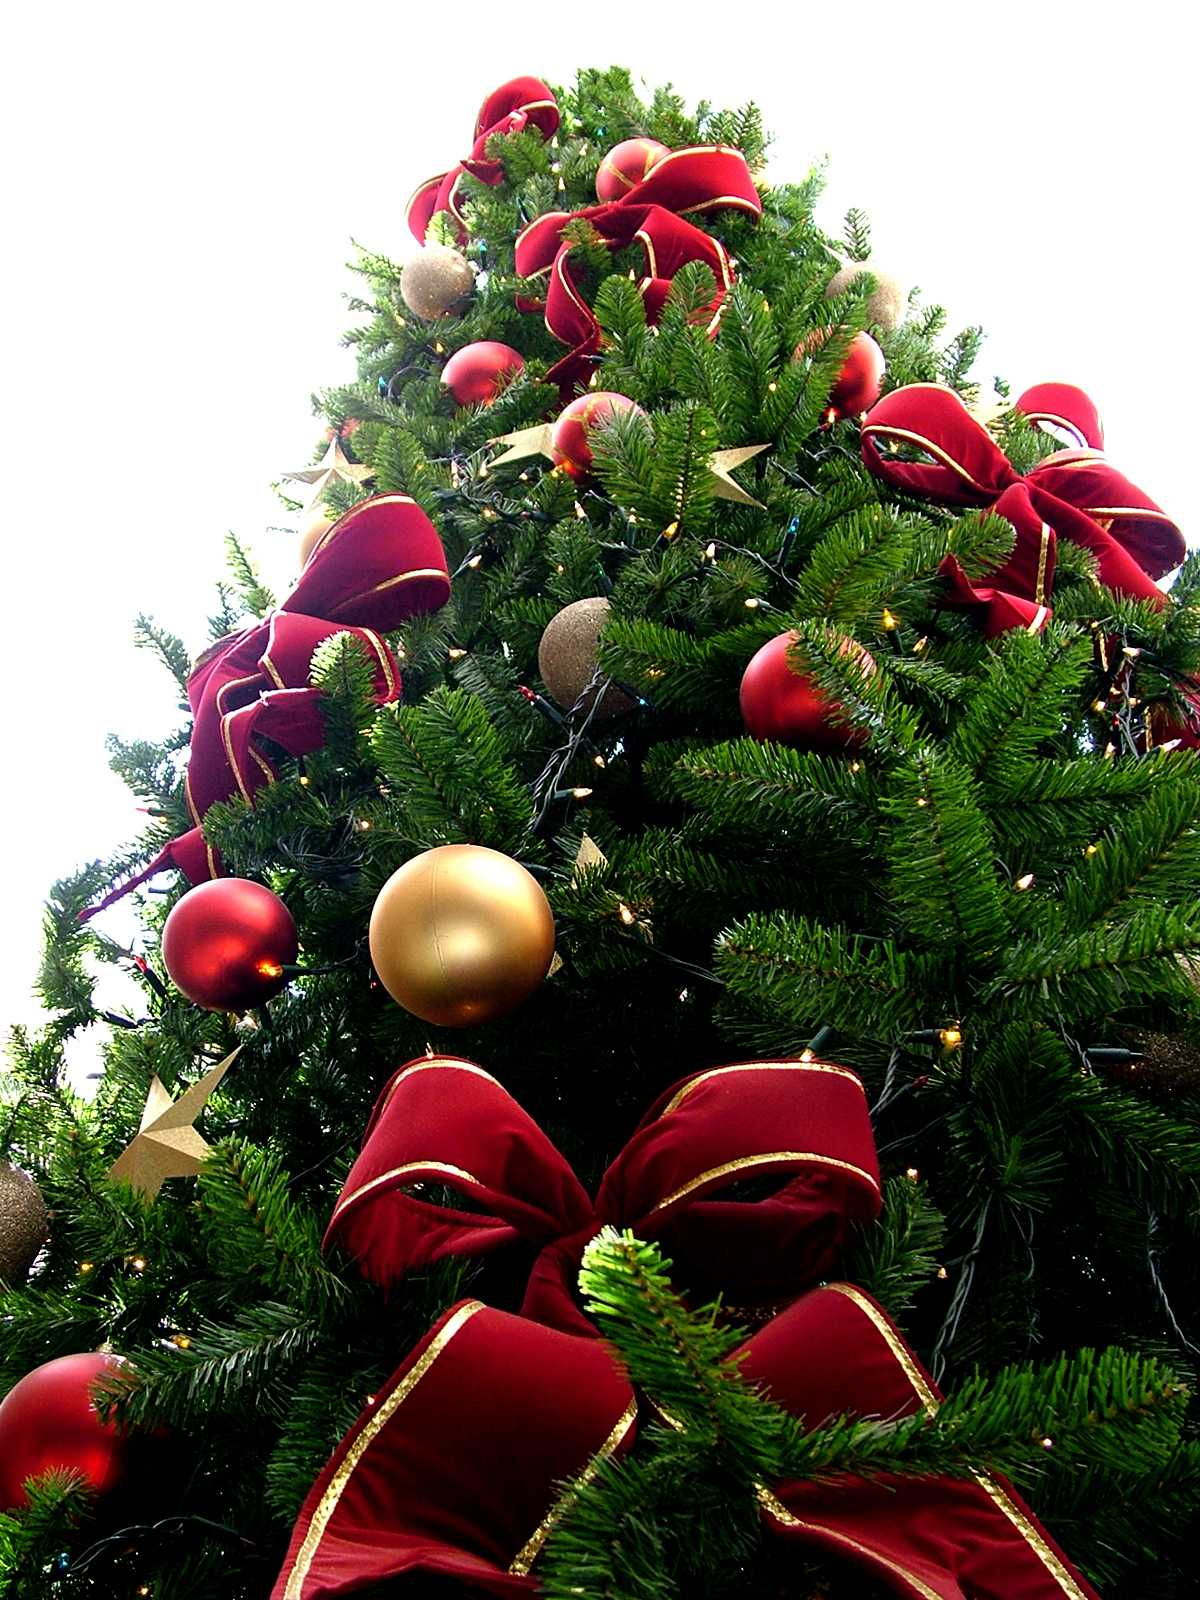 History Behind Christmas Traditions | The Word